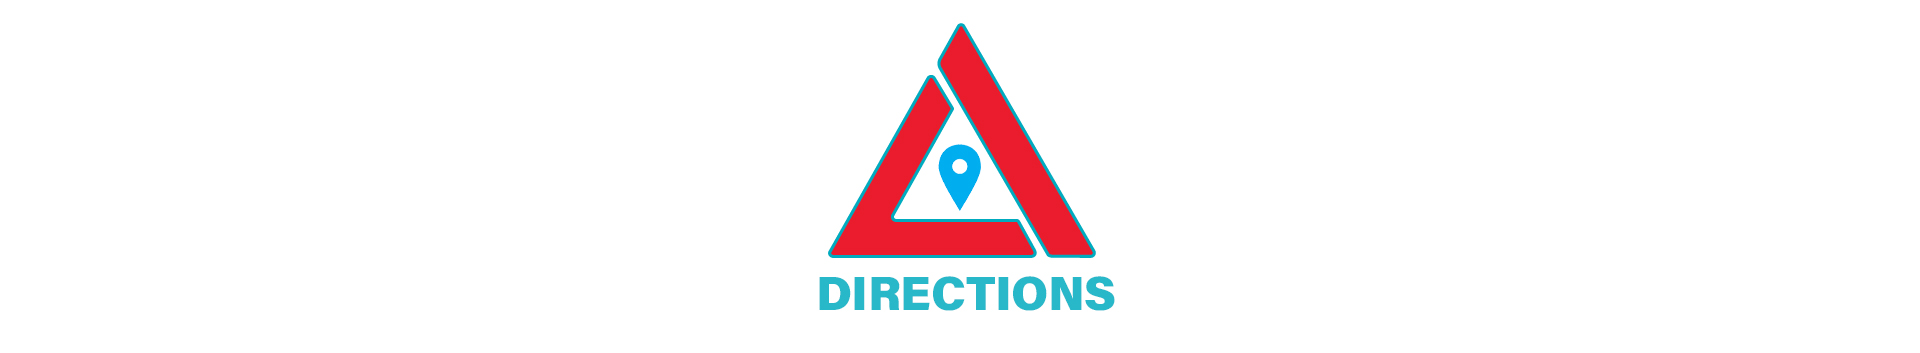 directions to activekidz Jericho Long Island